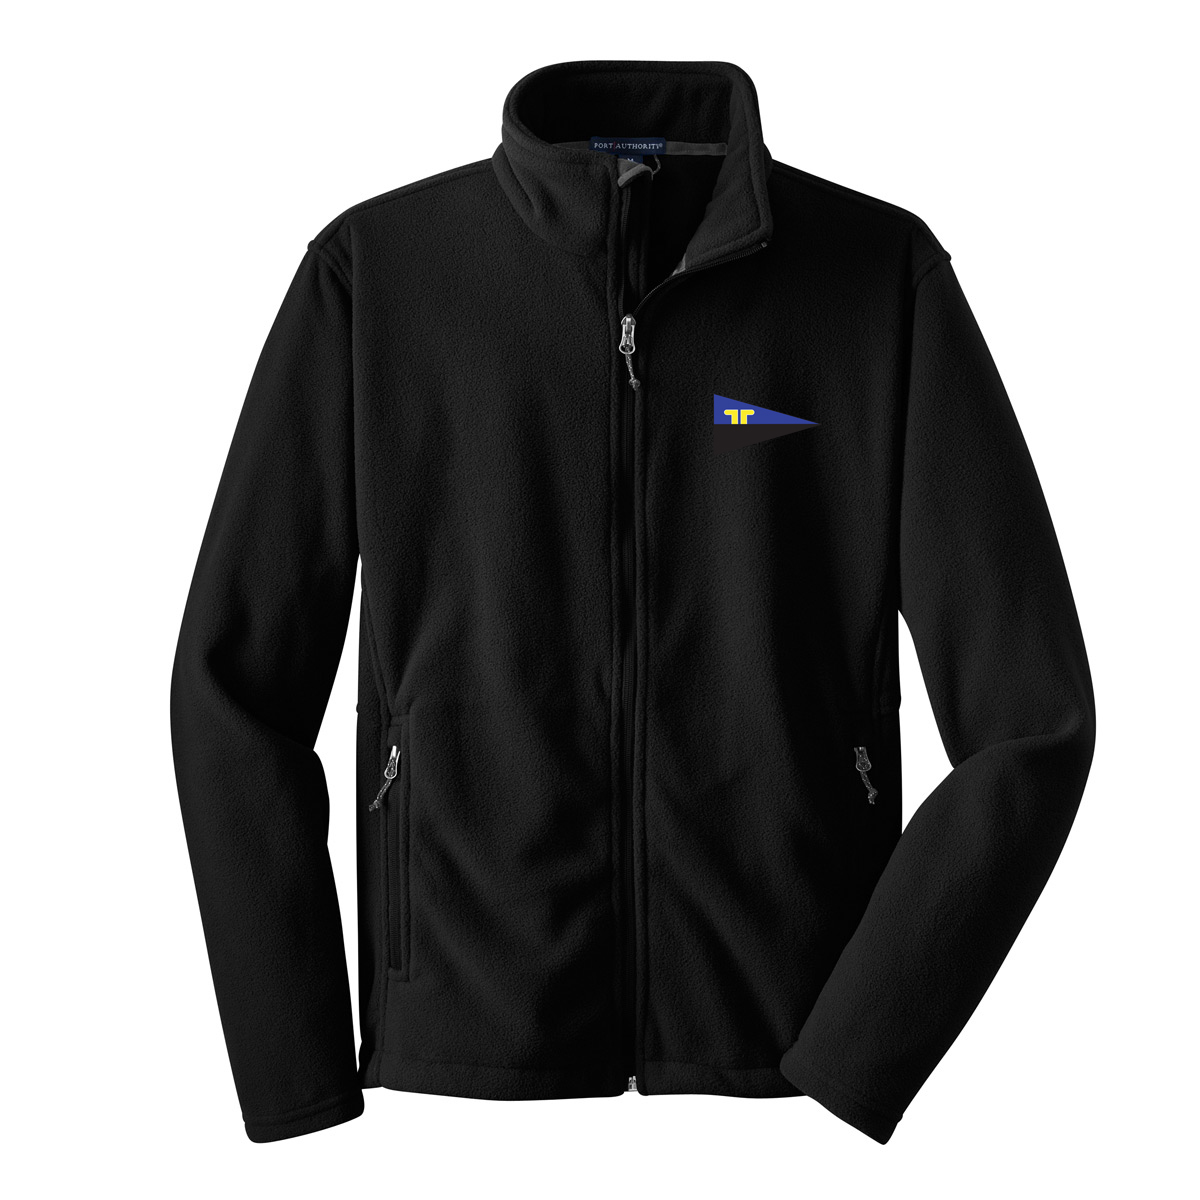 Mudheads - Men's Microfleece Jacket